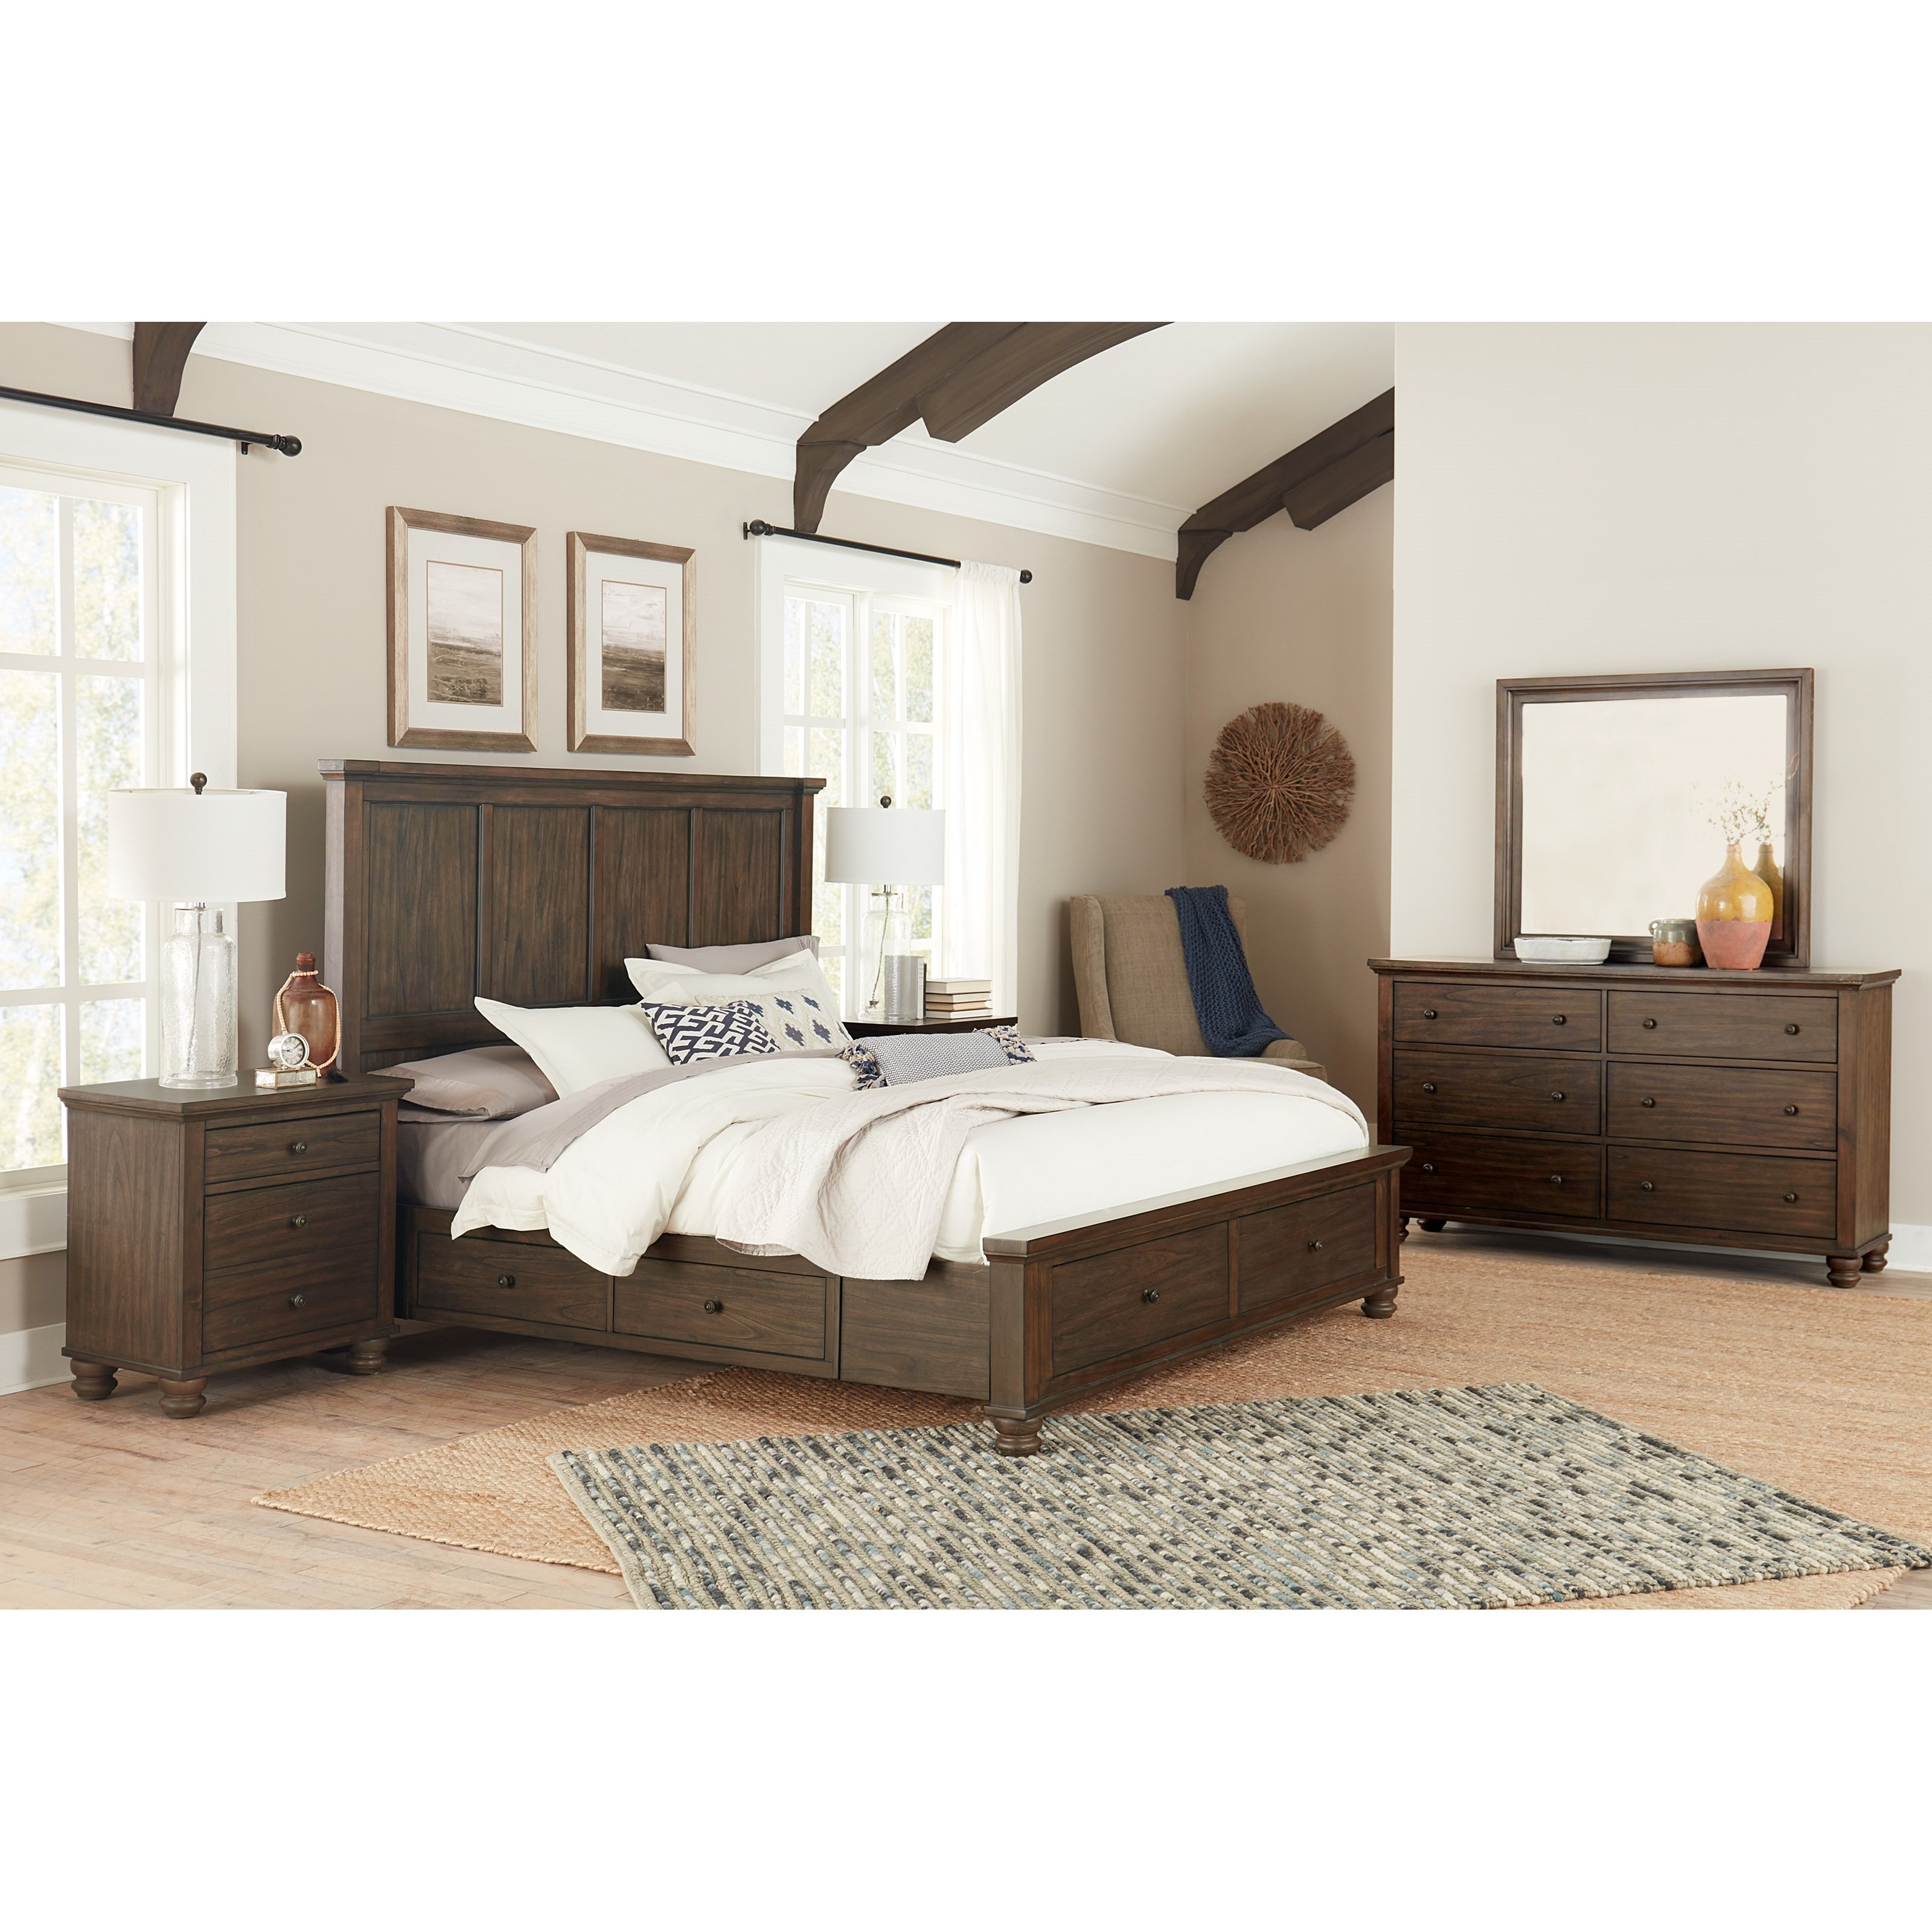 Hudson Valley Queen Bedroom Group by Aspenhome at Stoney Creek Furniture